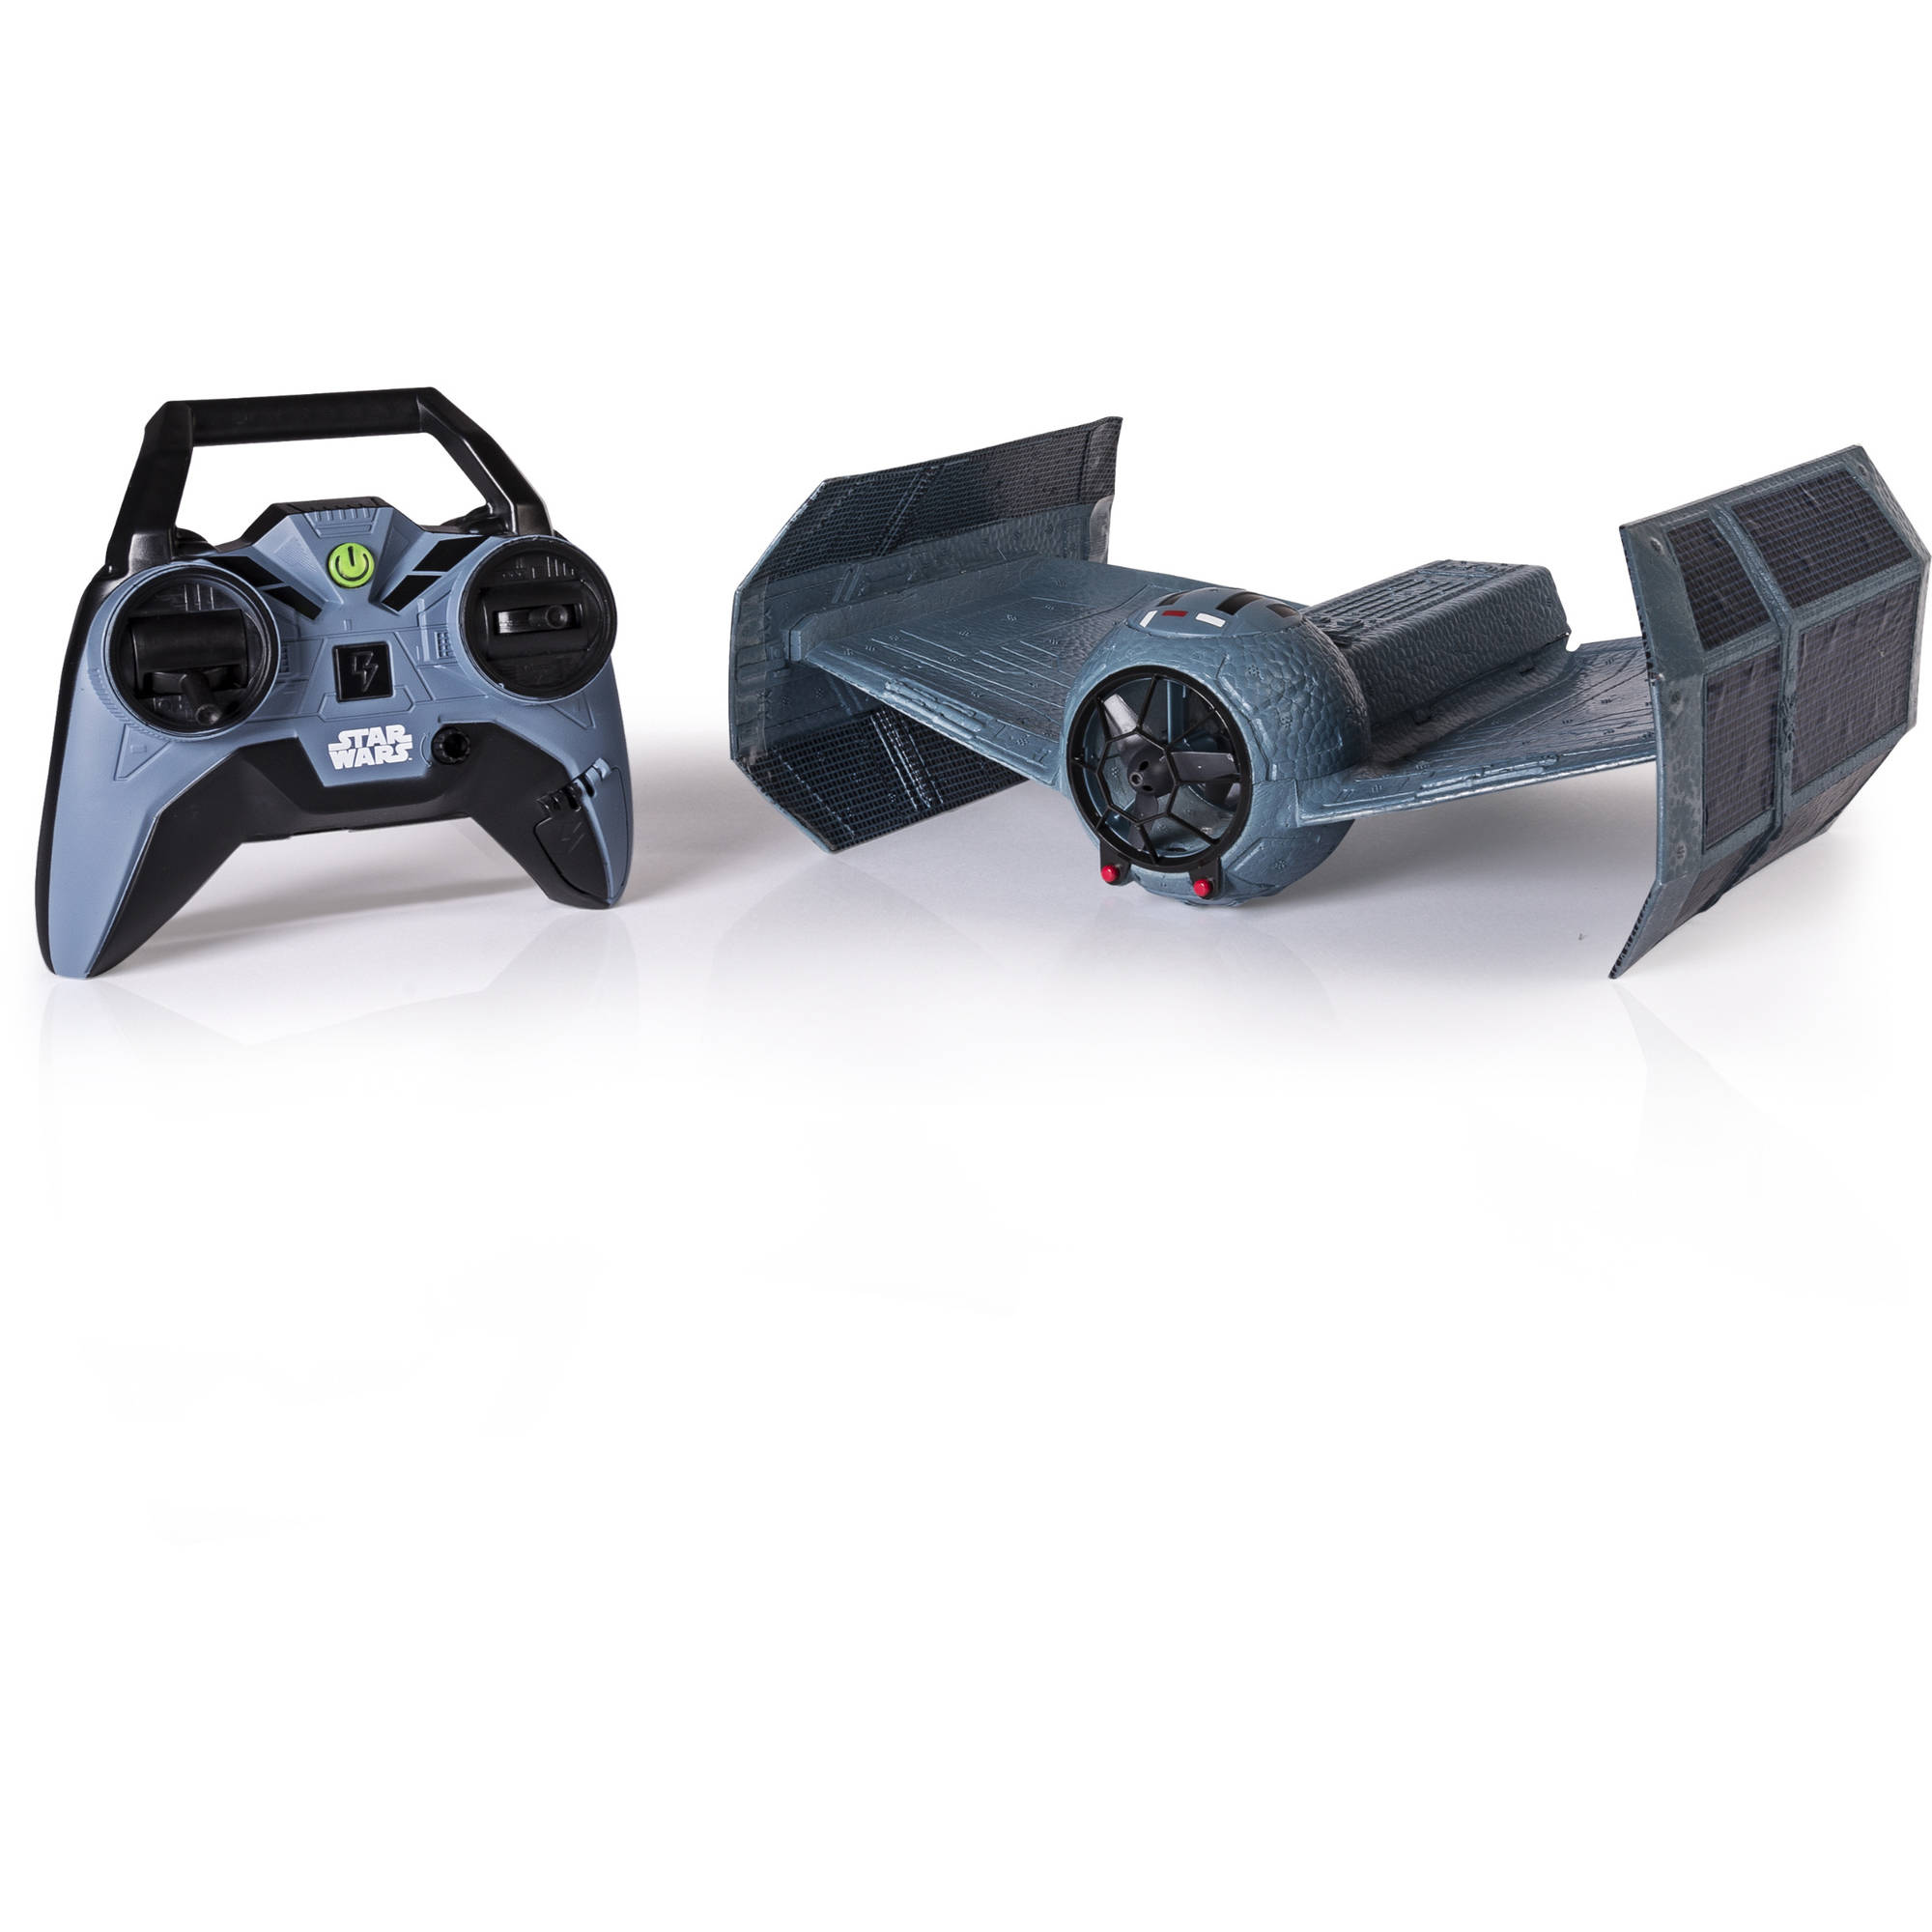 Air Hogs, Star Wars, Rogue One RC Tie Fighter Advanced, 2.4 GHZ